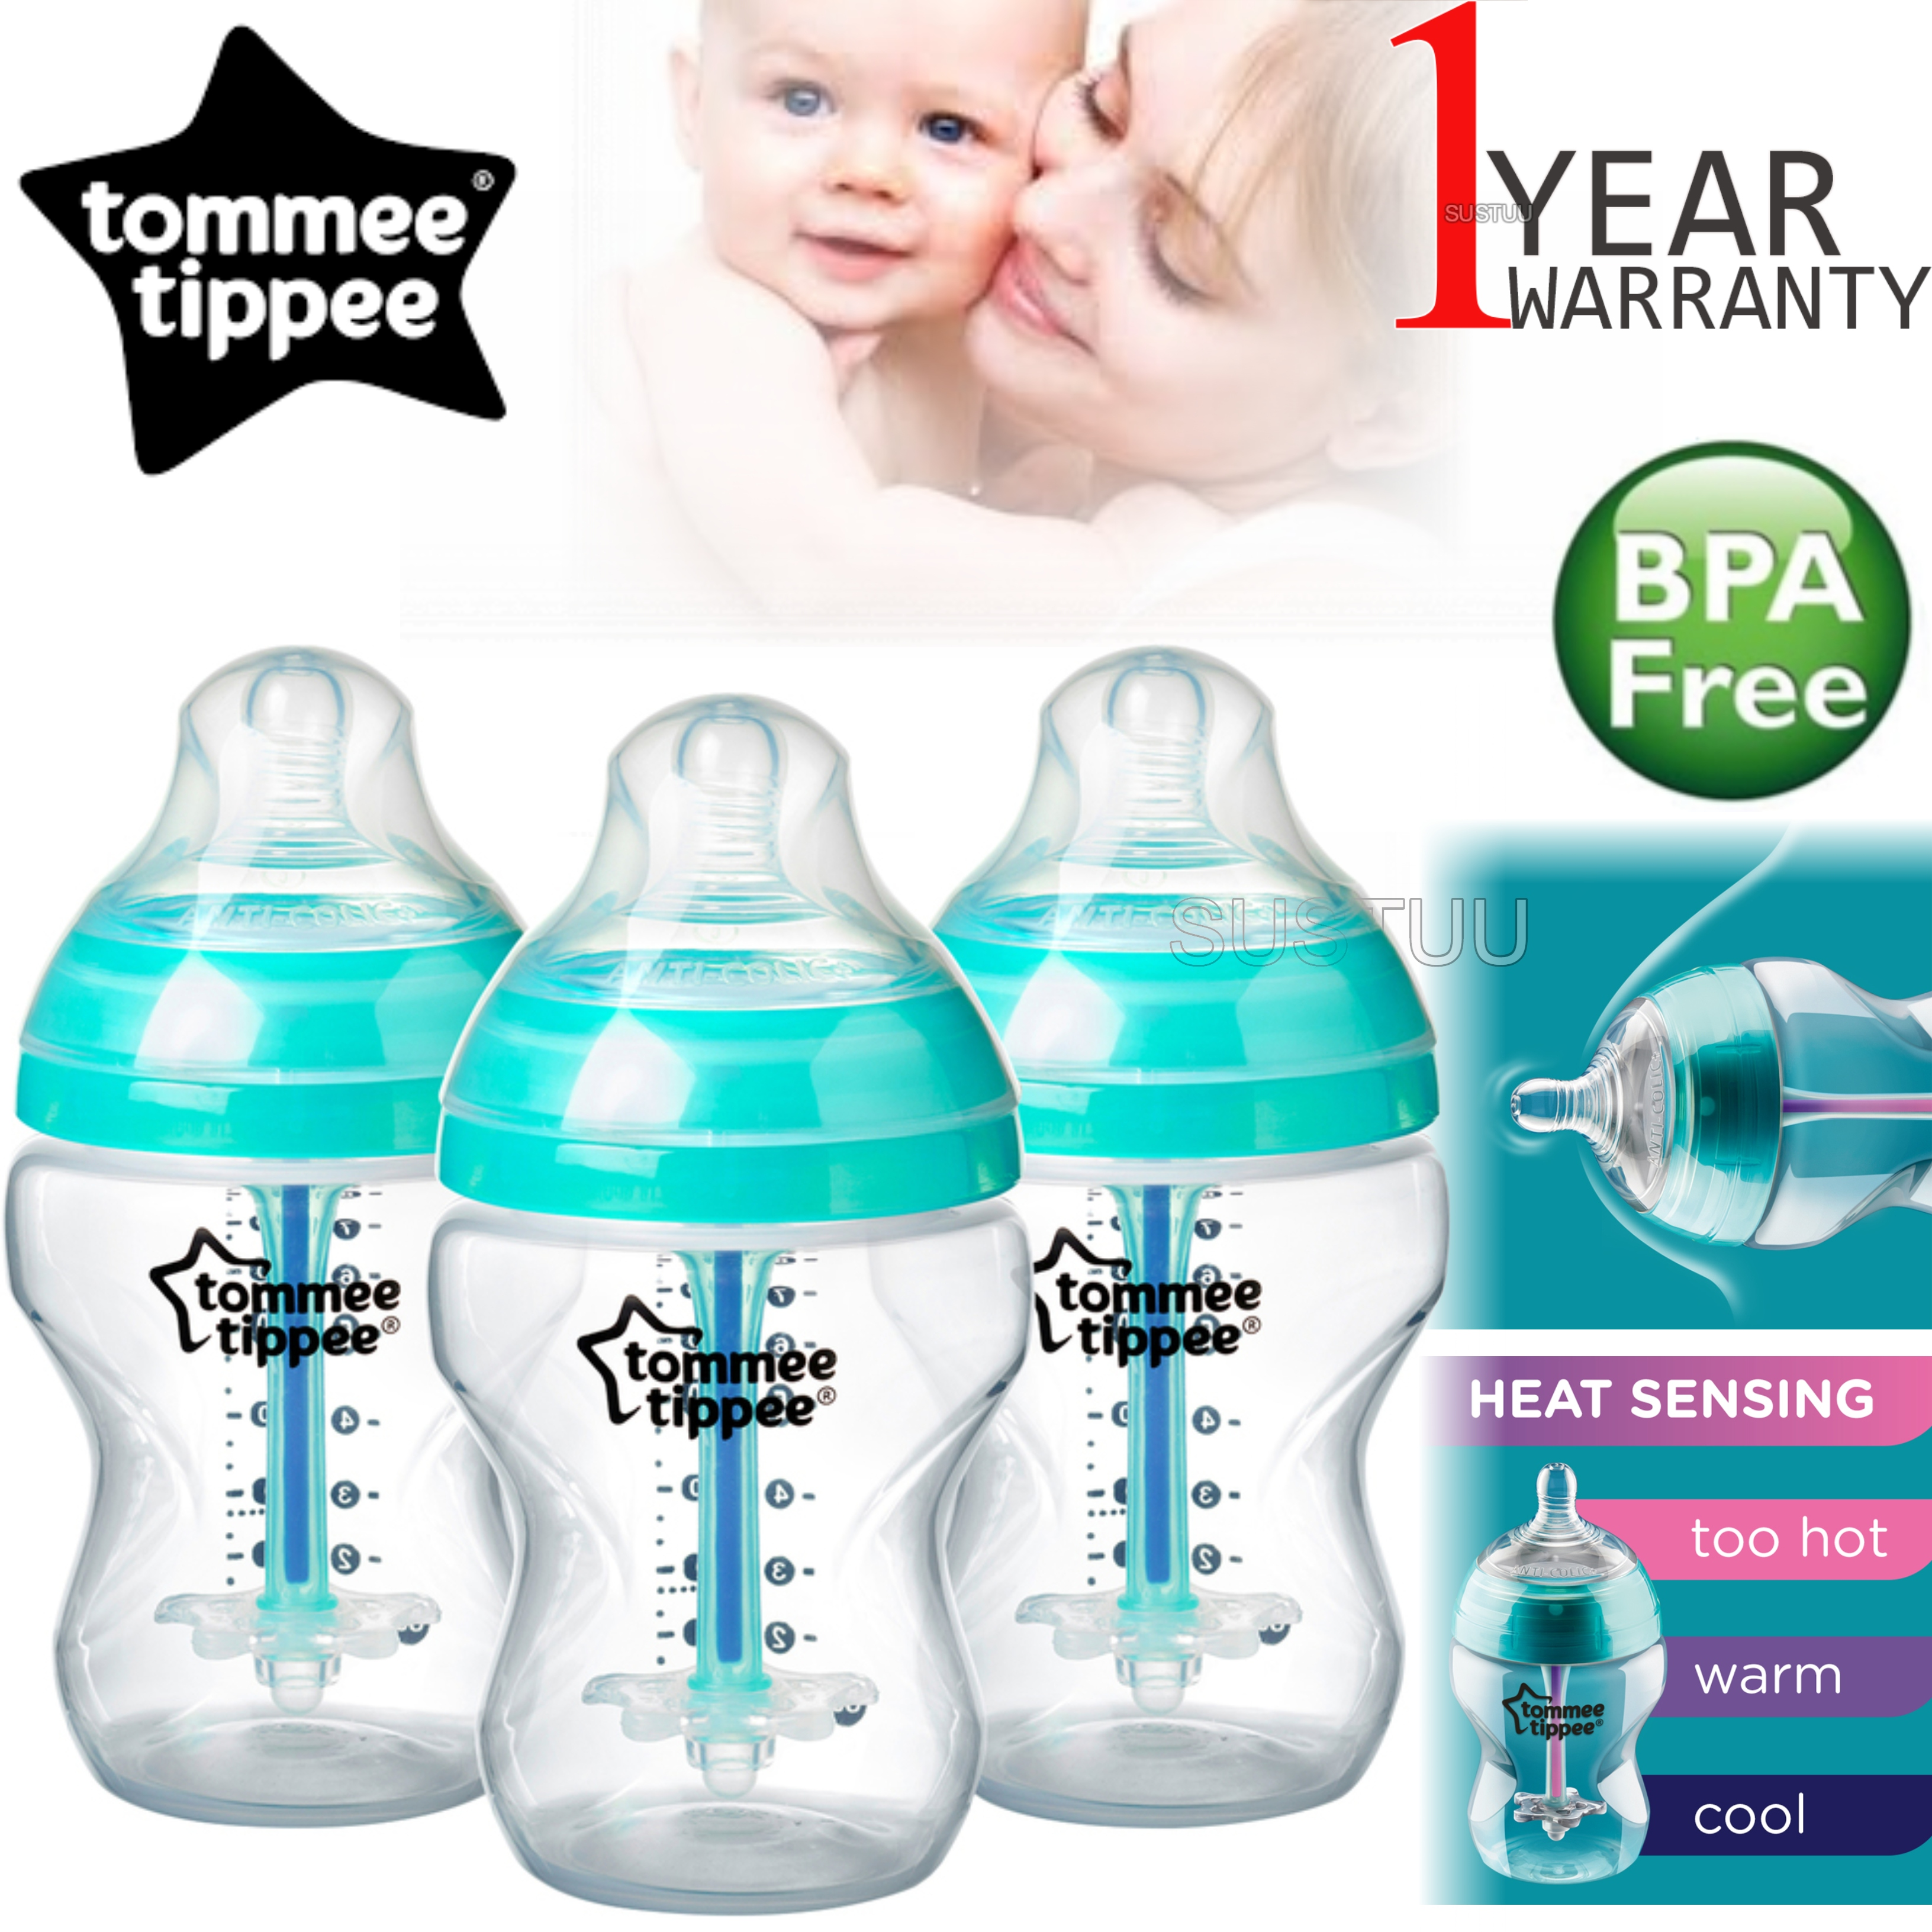 Tommee Tippee Advanced Anti-Colic Baby Feeding Bottle 260ml | Heat Sensing | 3 Pack